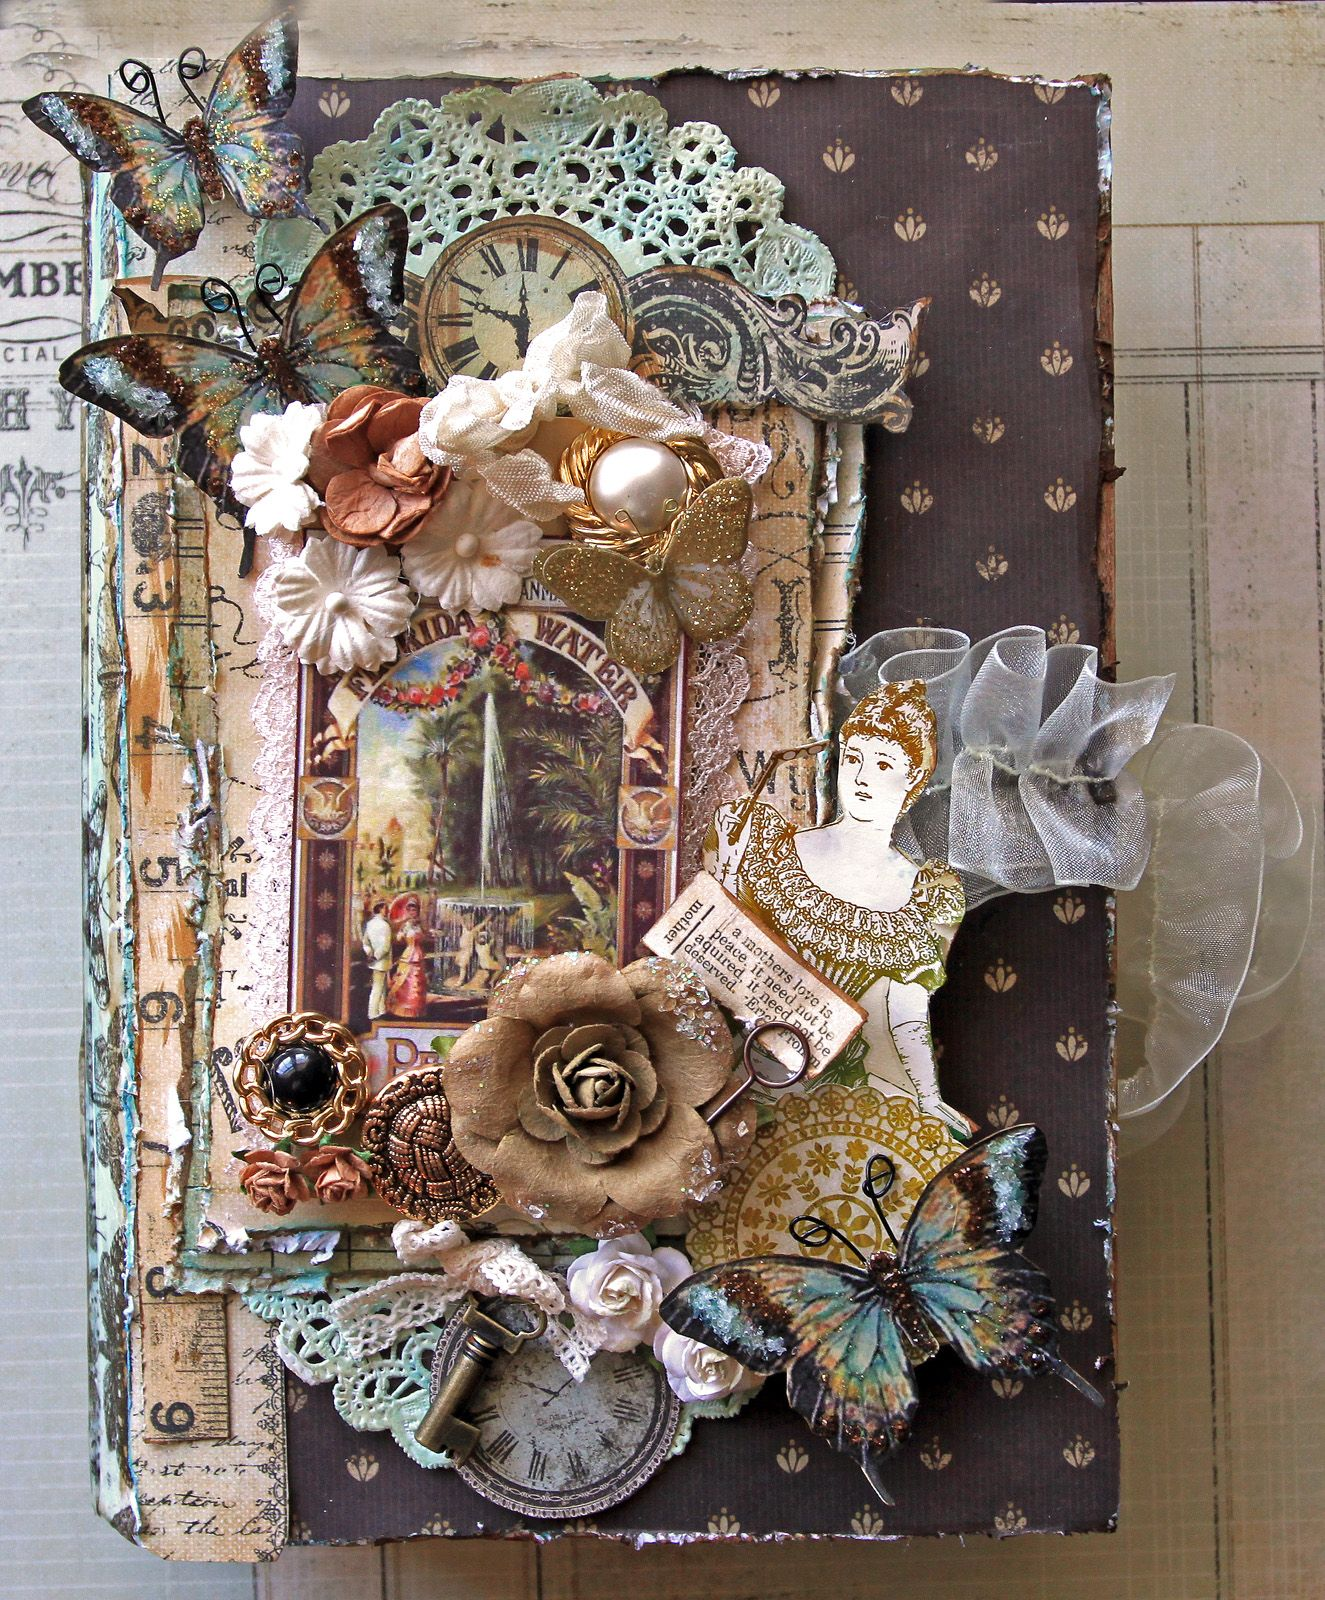 How to make scrapbook vintage - Have You Heard Is The Sponsor Of The March Sketch Challenge Over At Once Upon A Sketch So I Invite You To Come Play Along For A Chance At One Of The